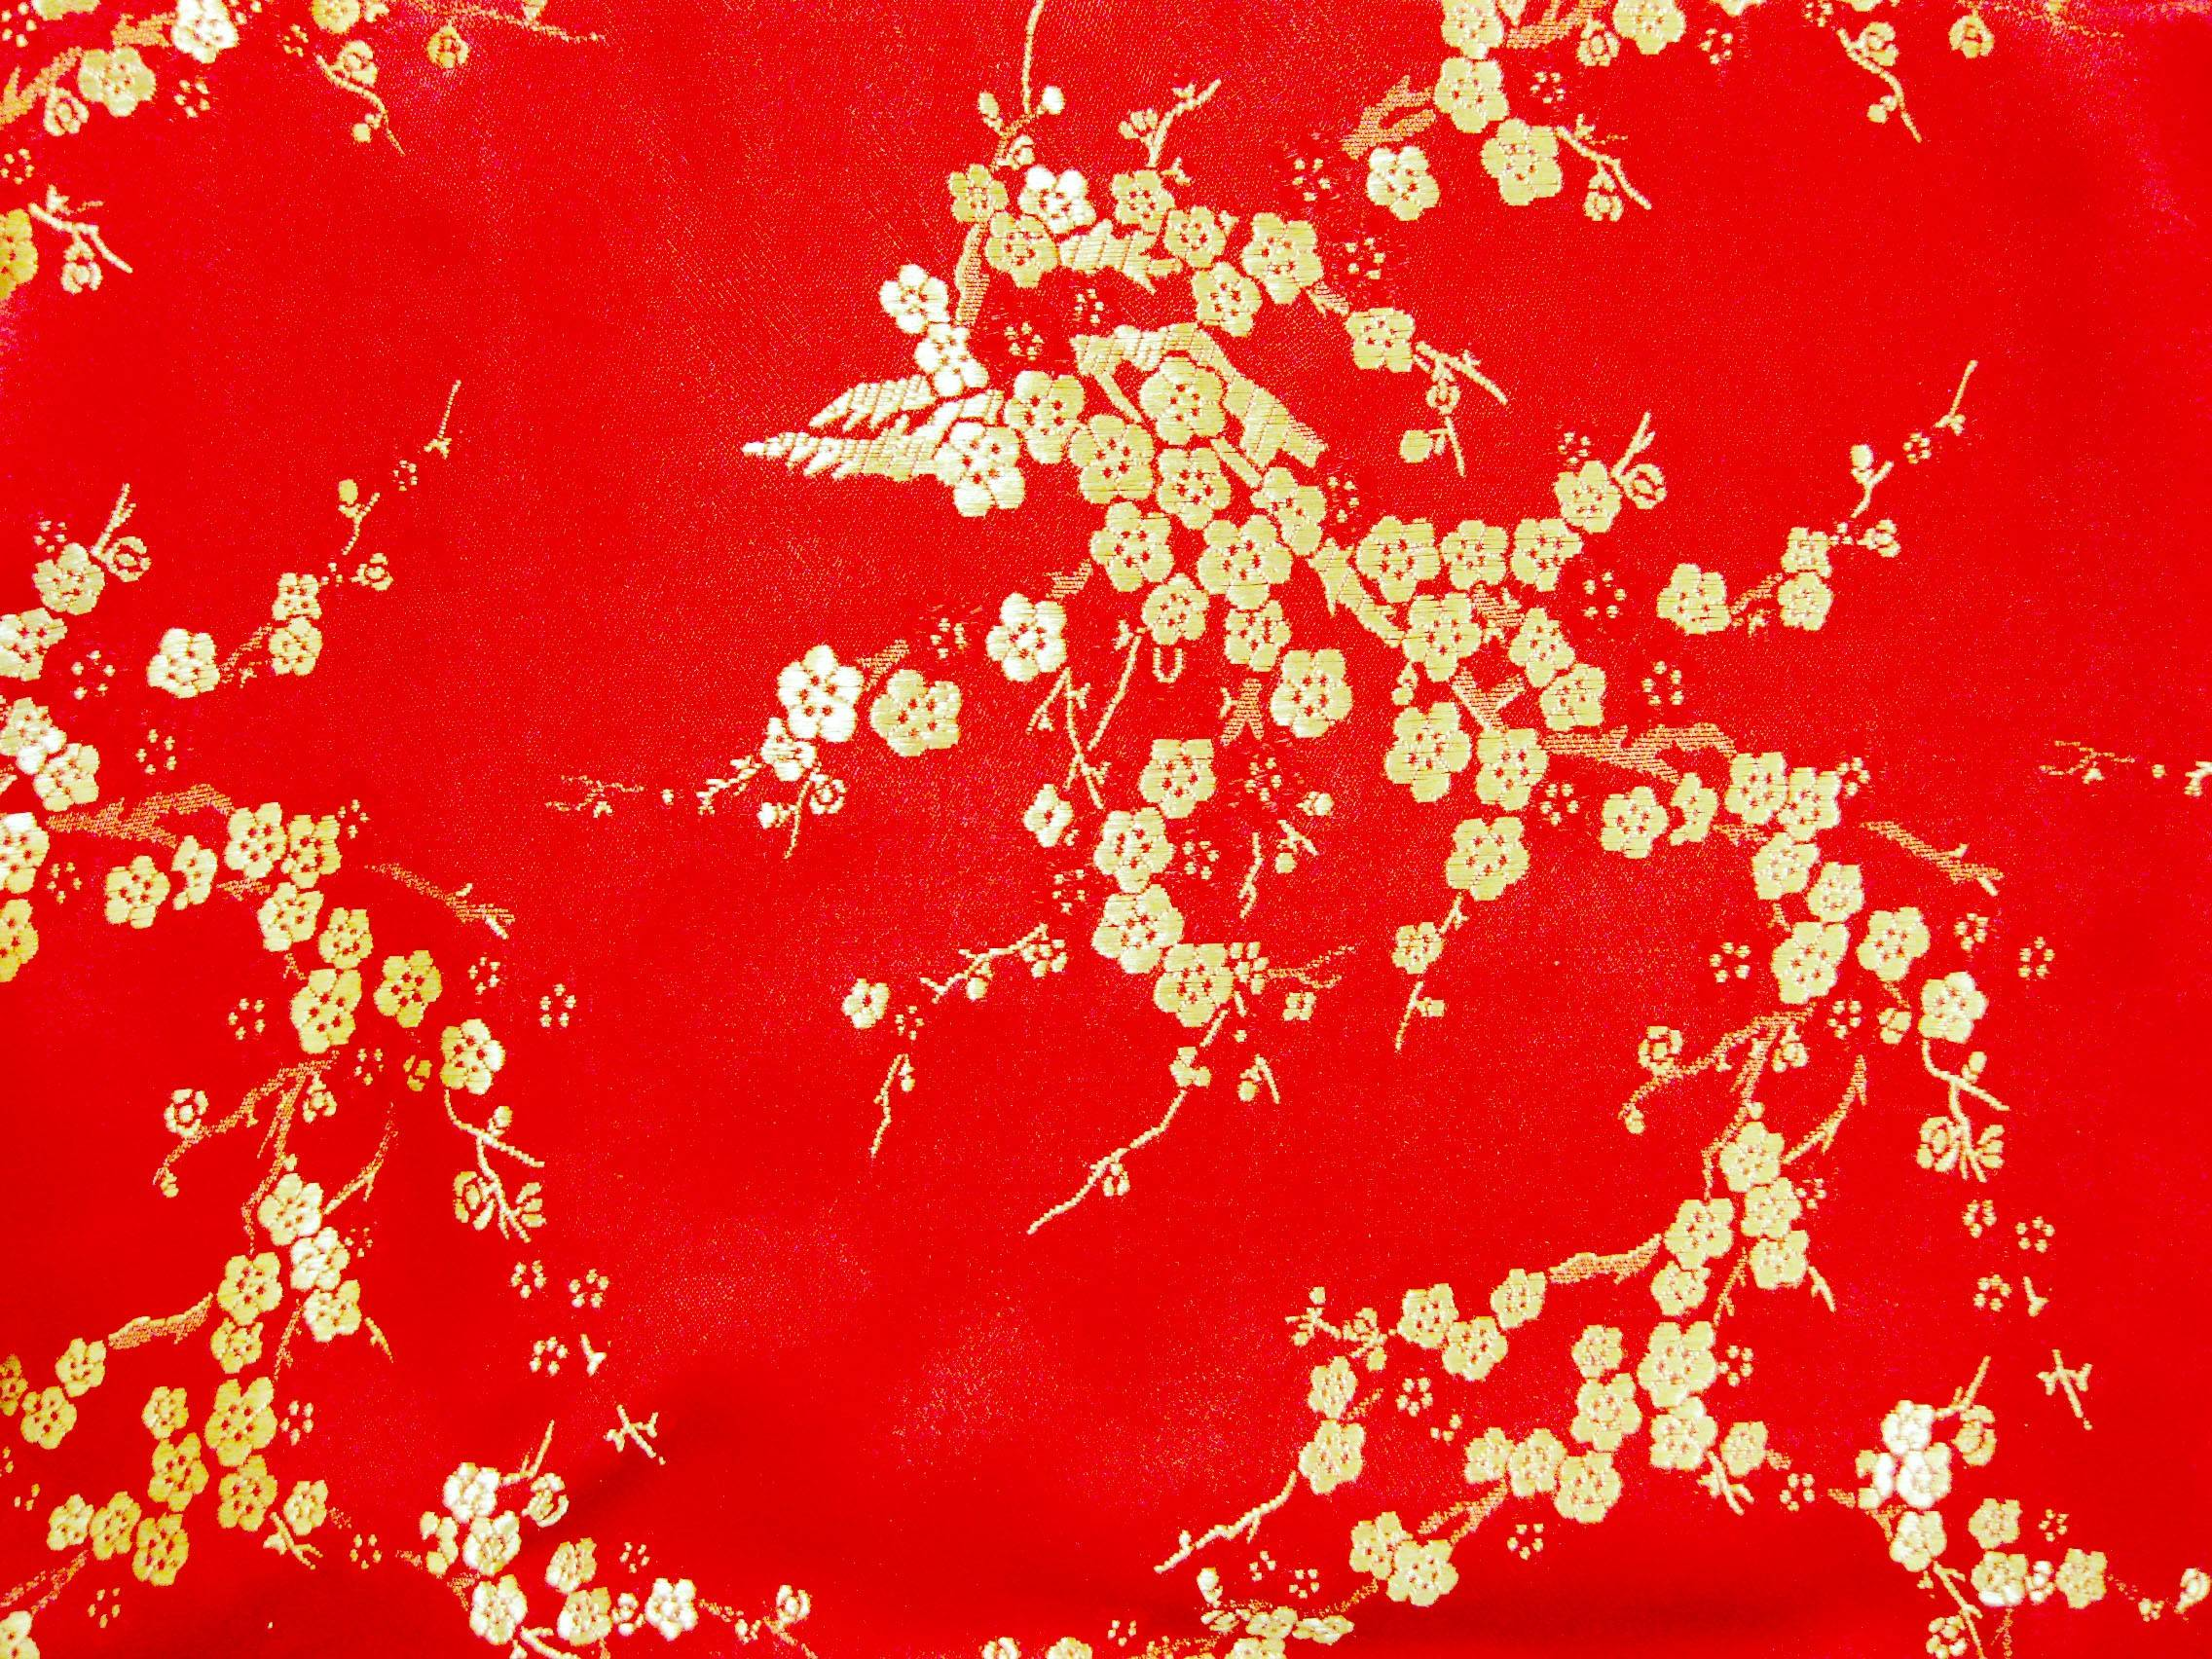 Chinese Textures 22722151704 Wallpaper 1620468 2272x1704